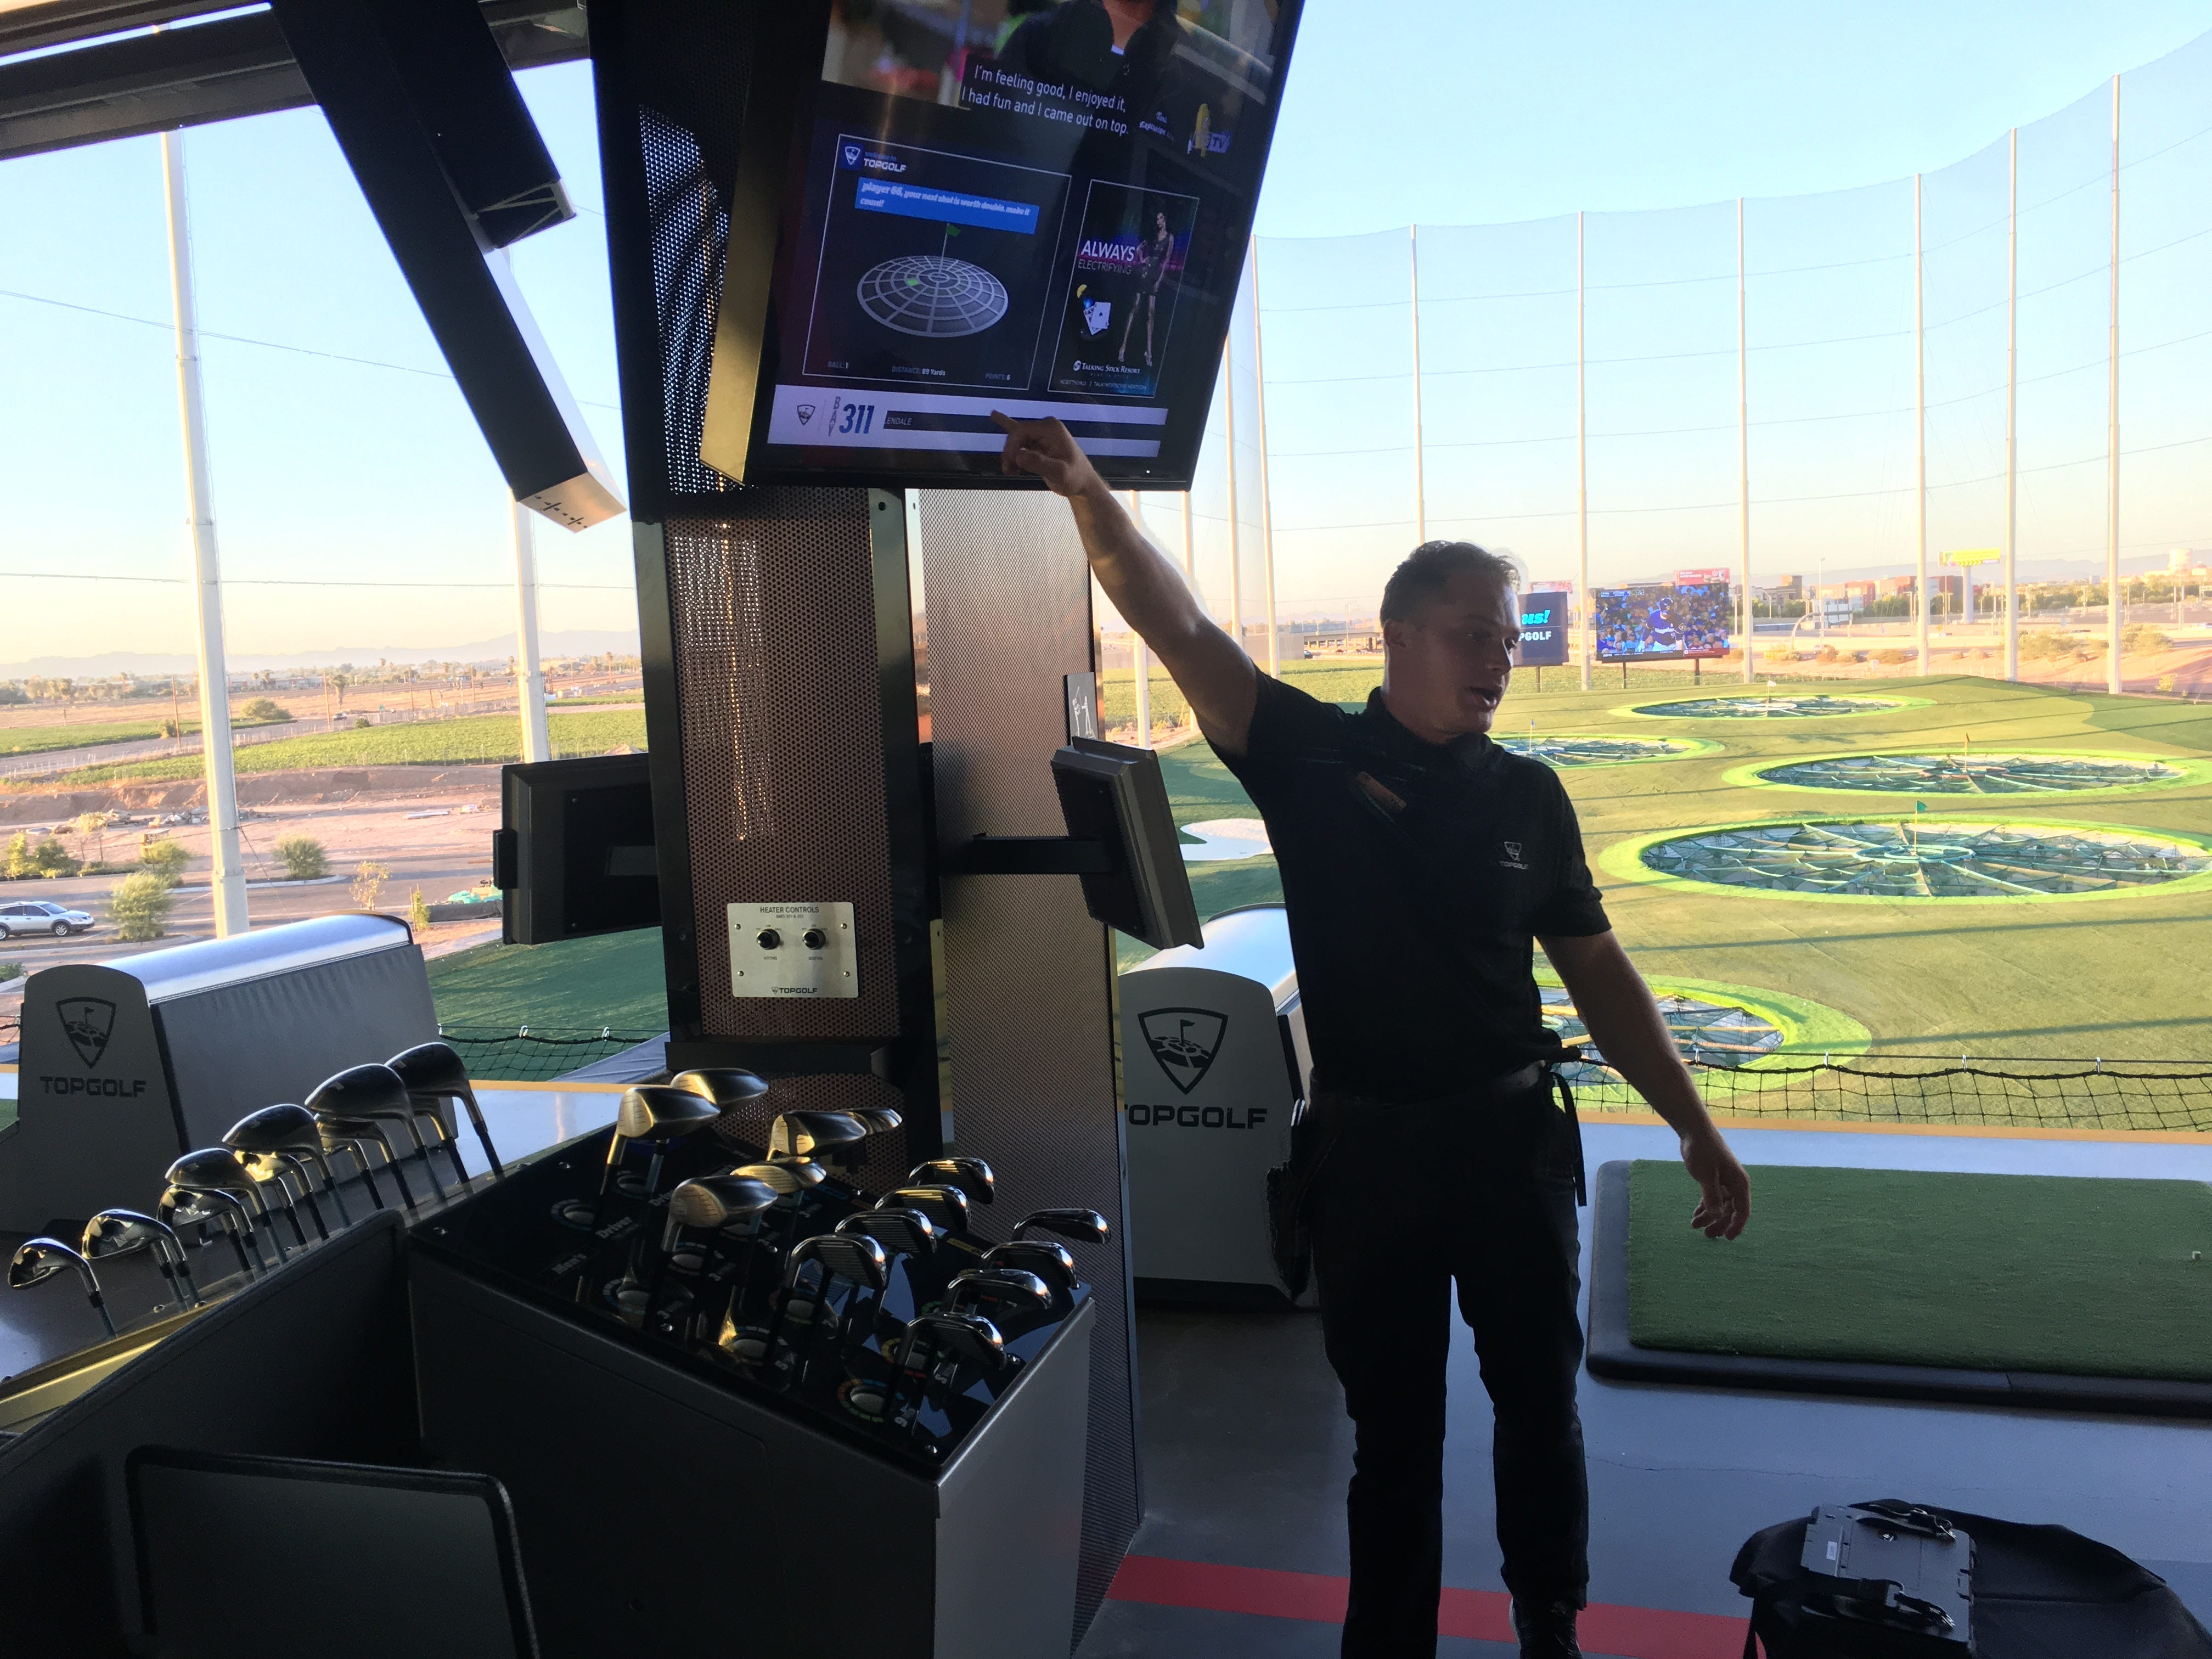 Topgolf event ambassador Lucas Lourie explains the game and how scoring works to a group during a tour Sept. 12, 2018, of Topgolf's newest Valley location in Glendale. It's scheduled to open in September.